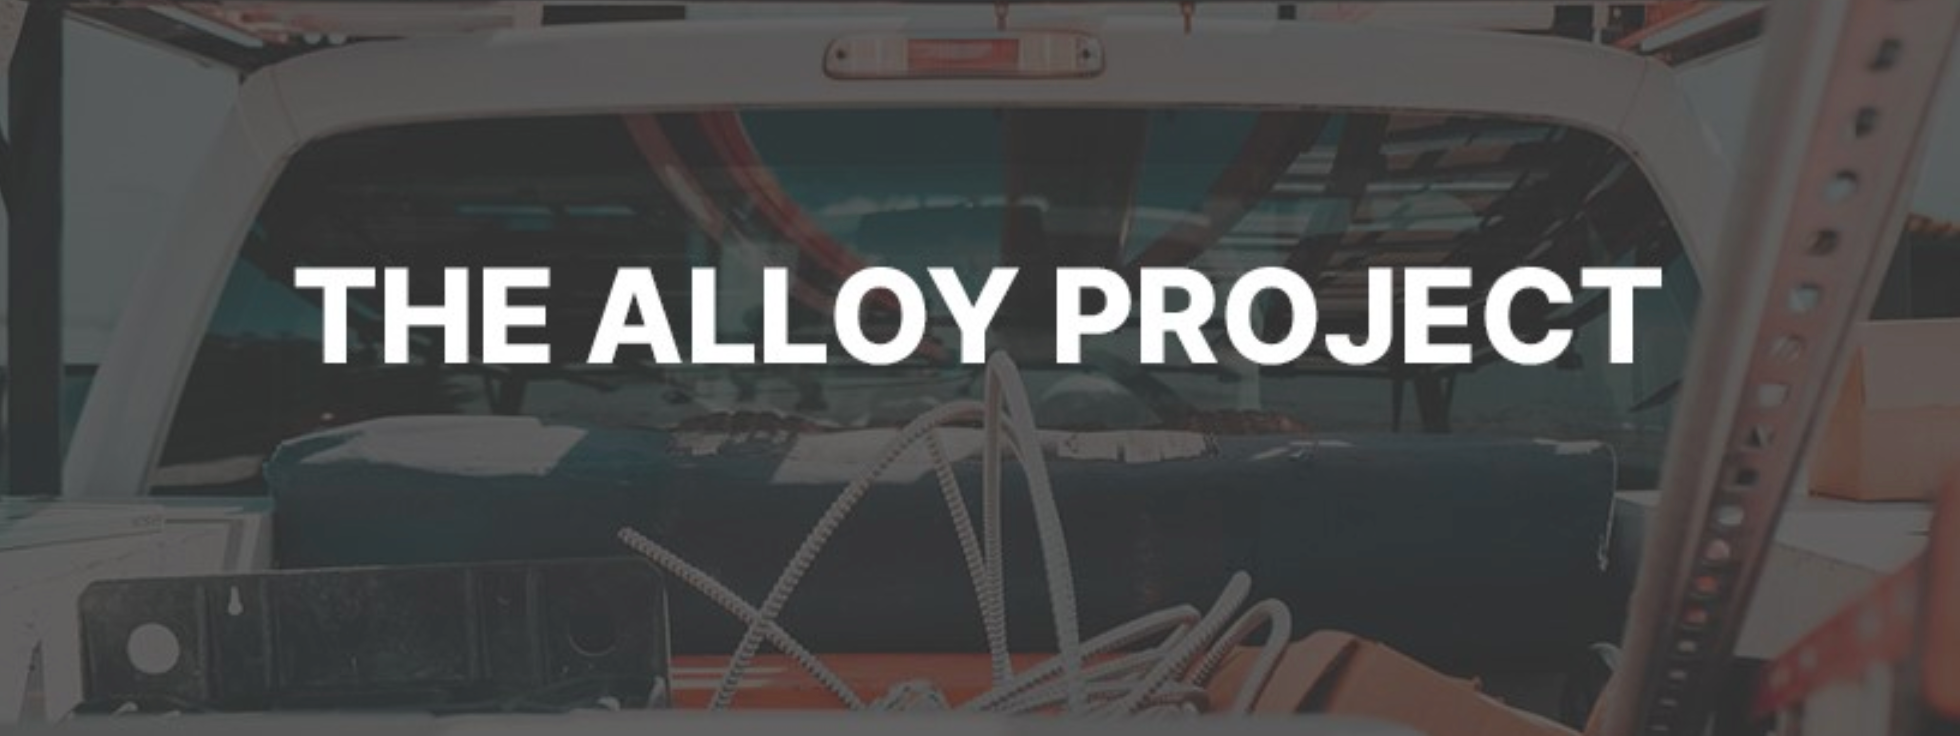 The Alloy Project